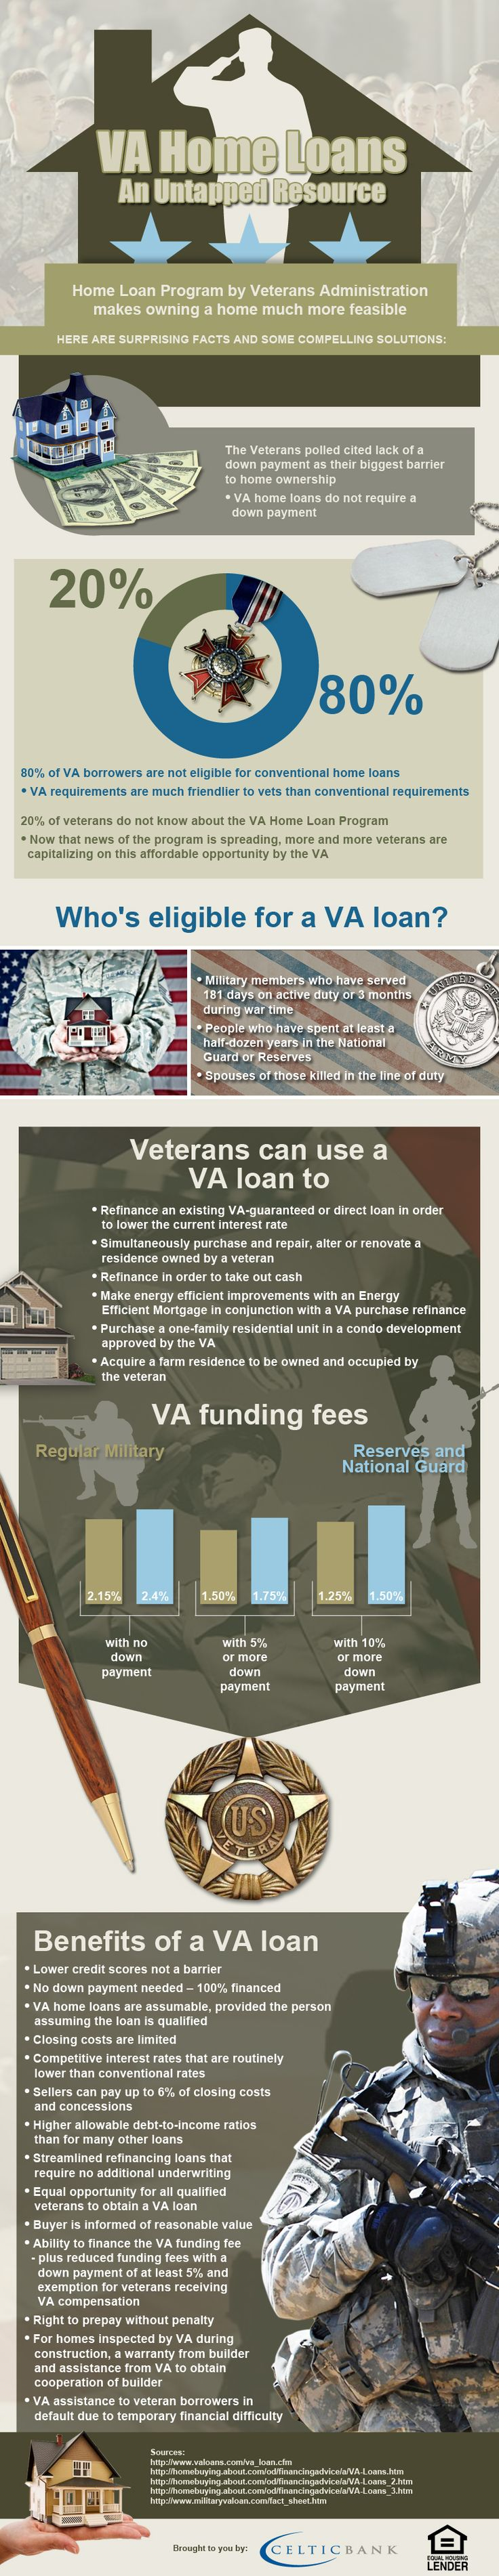 Most Veterans don't use their government benefits to purchase a home. Most veterans can buy a home without a downpayment, and with lower credit scores